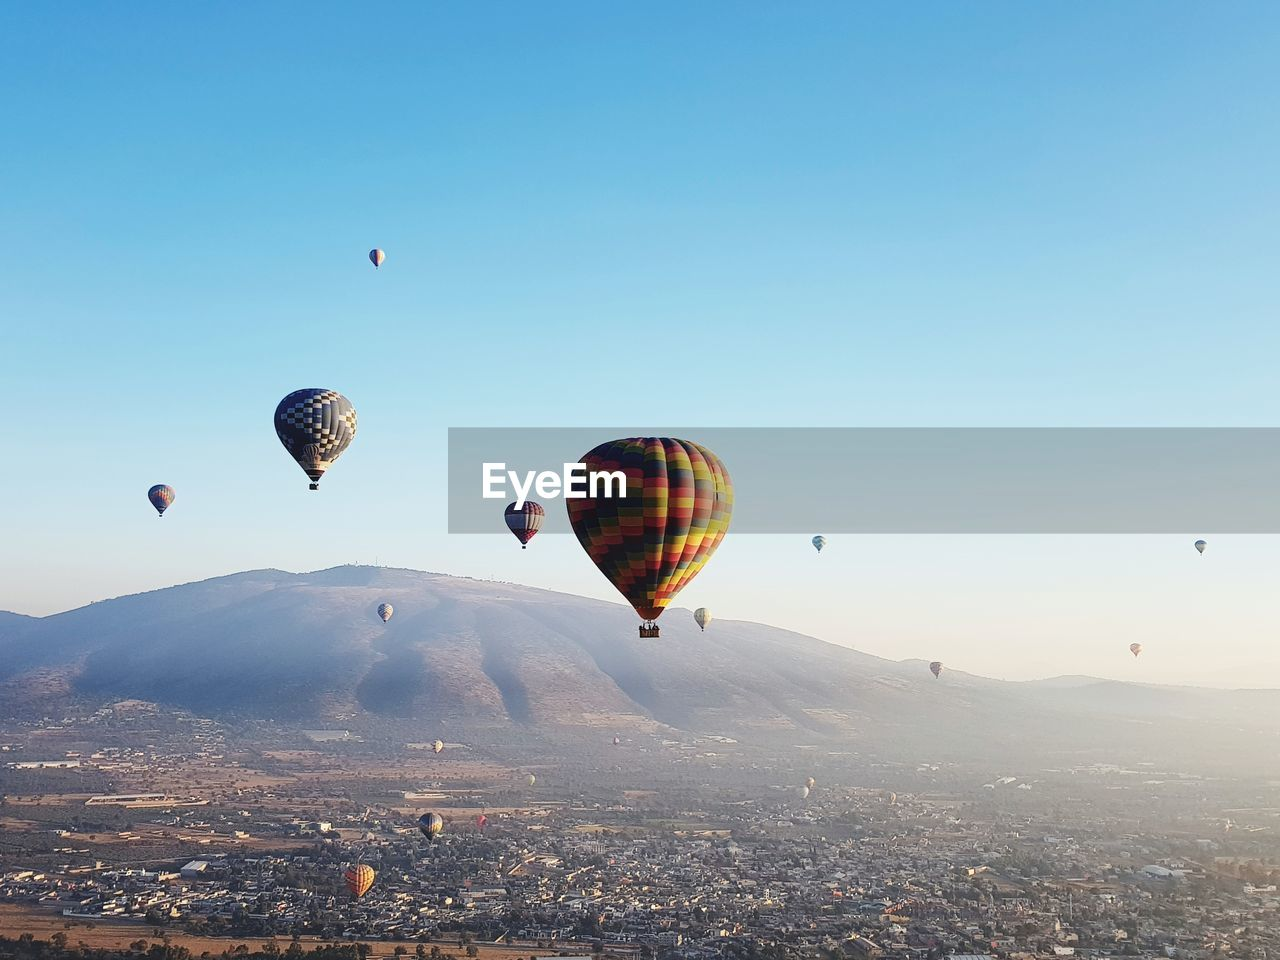 hot air balloon, air vehicle, flying, mid-air, balloon, sky, transportation, adventure, nature, architecture, city, clear sky, building exterior, travel, mode of transportation, parachute, ballooning festival, built structure, extreme sports, cityscape, no people, outdoors